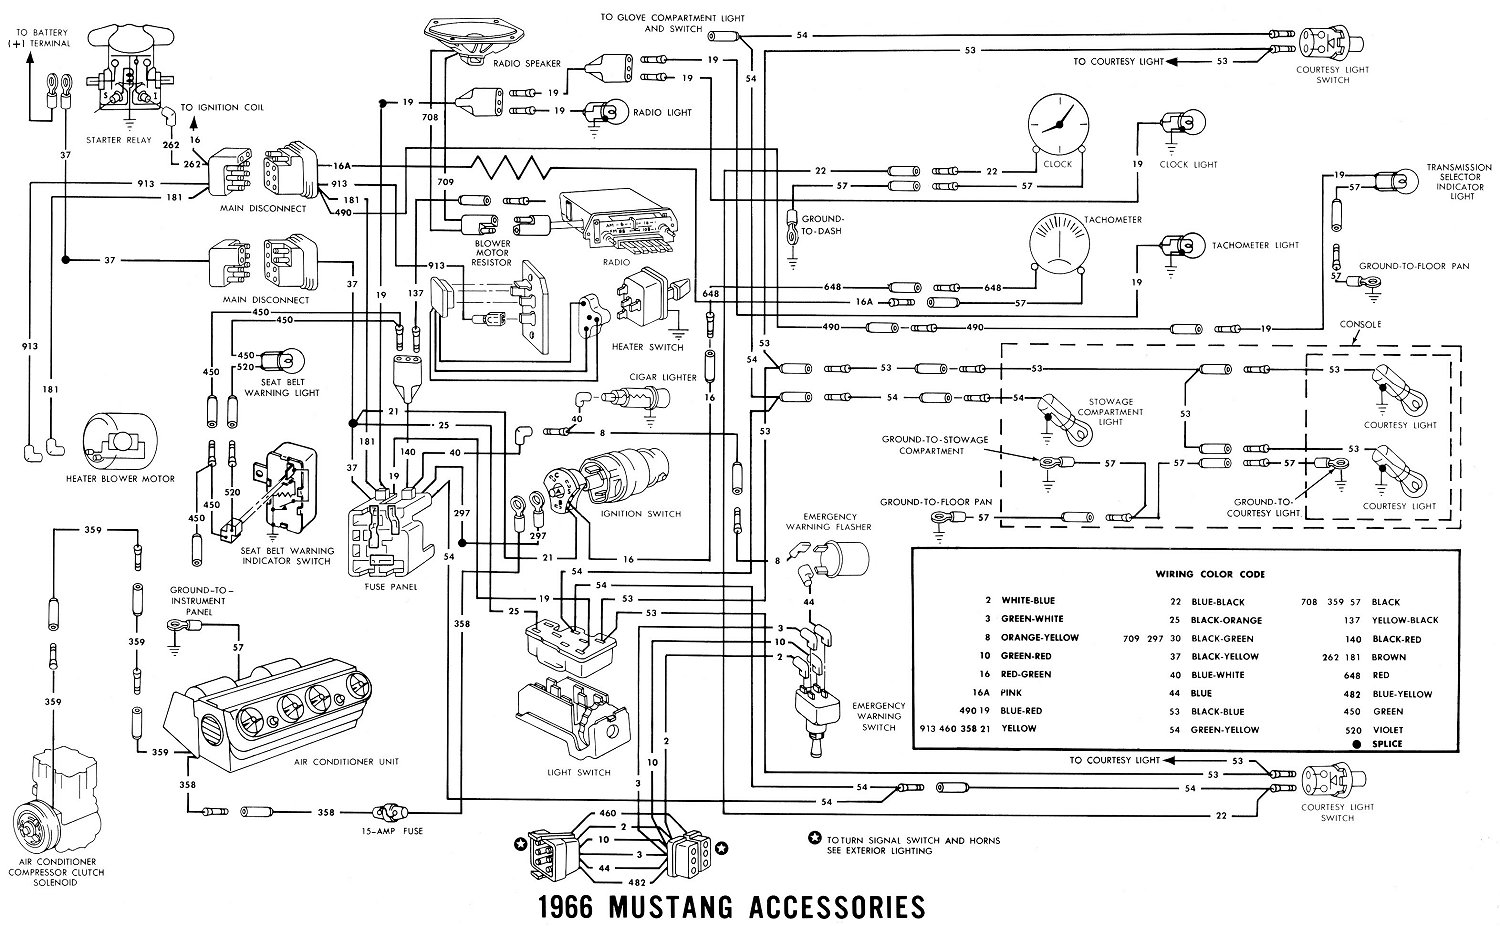 1966 Ford Mustang Accessories Wiring Diagram 1968 ford f100 wiring diagram 1965 ford f100 alternator wiring 1966 ford truck wiring diagram at aneh.co